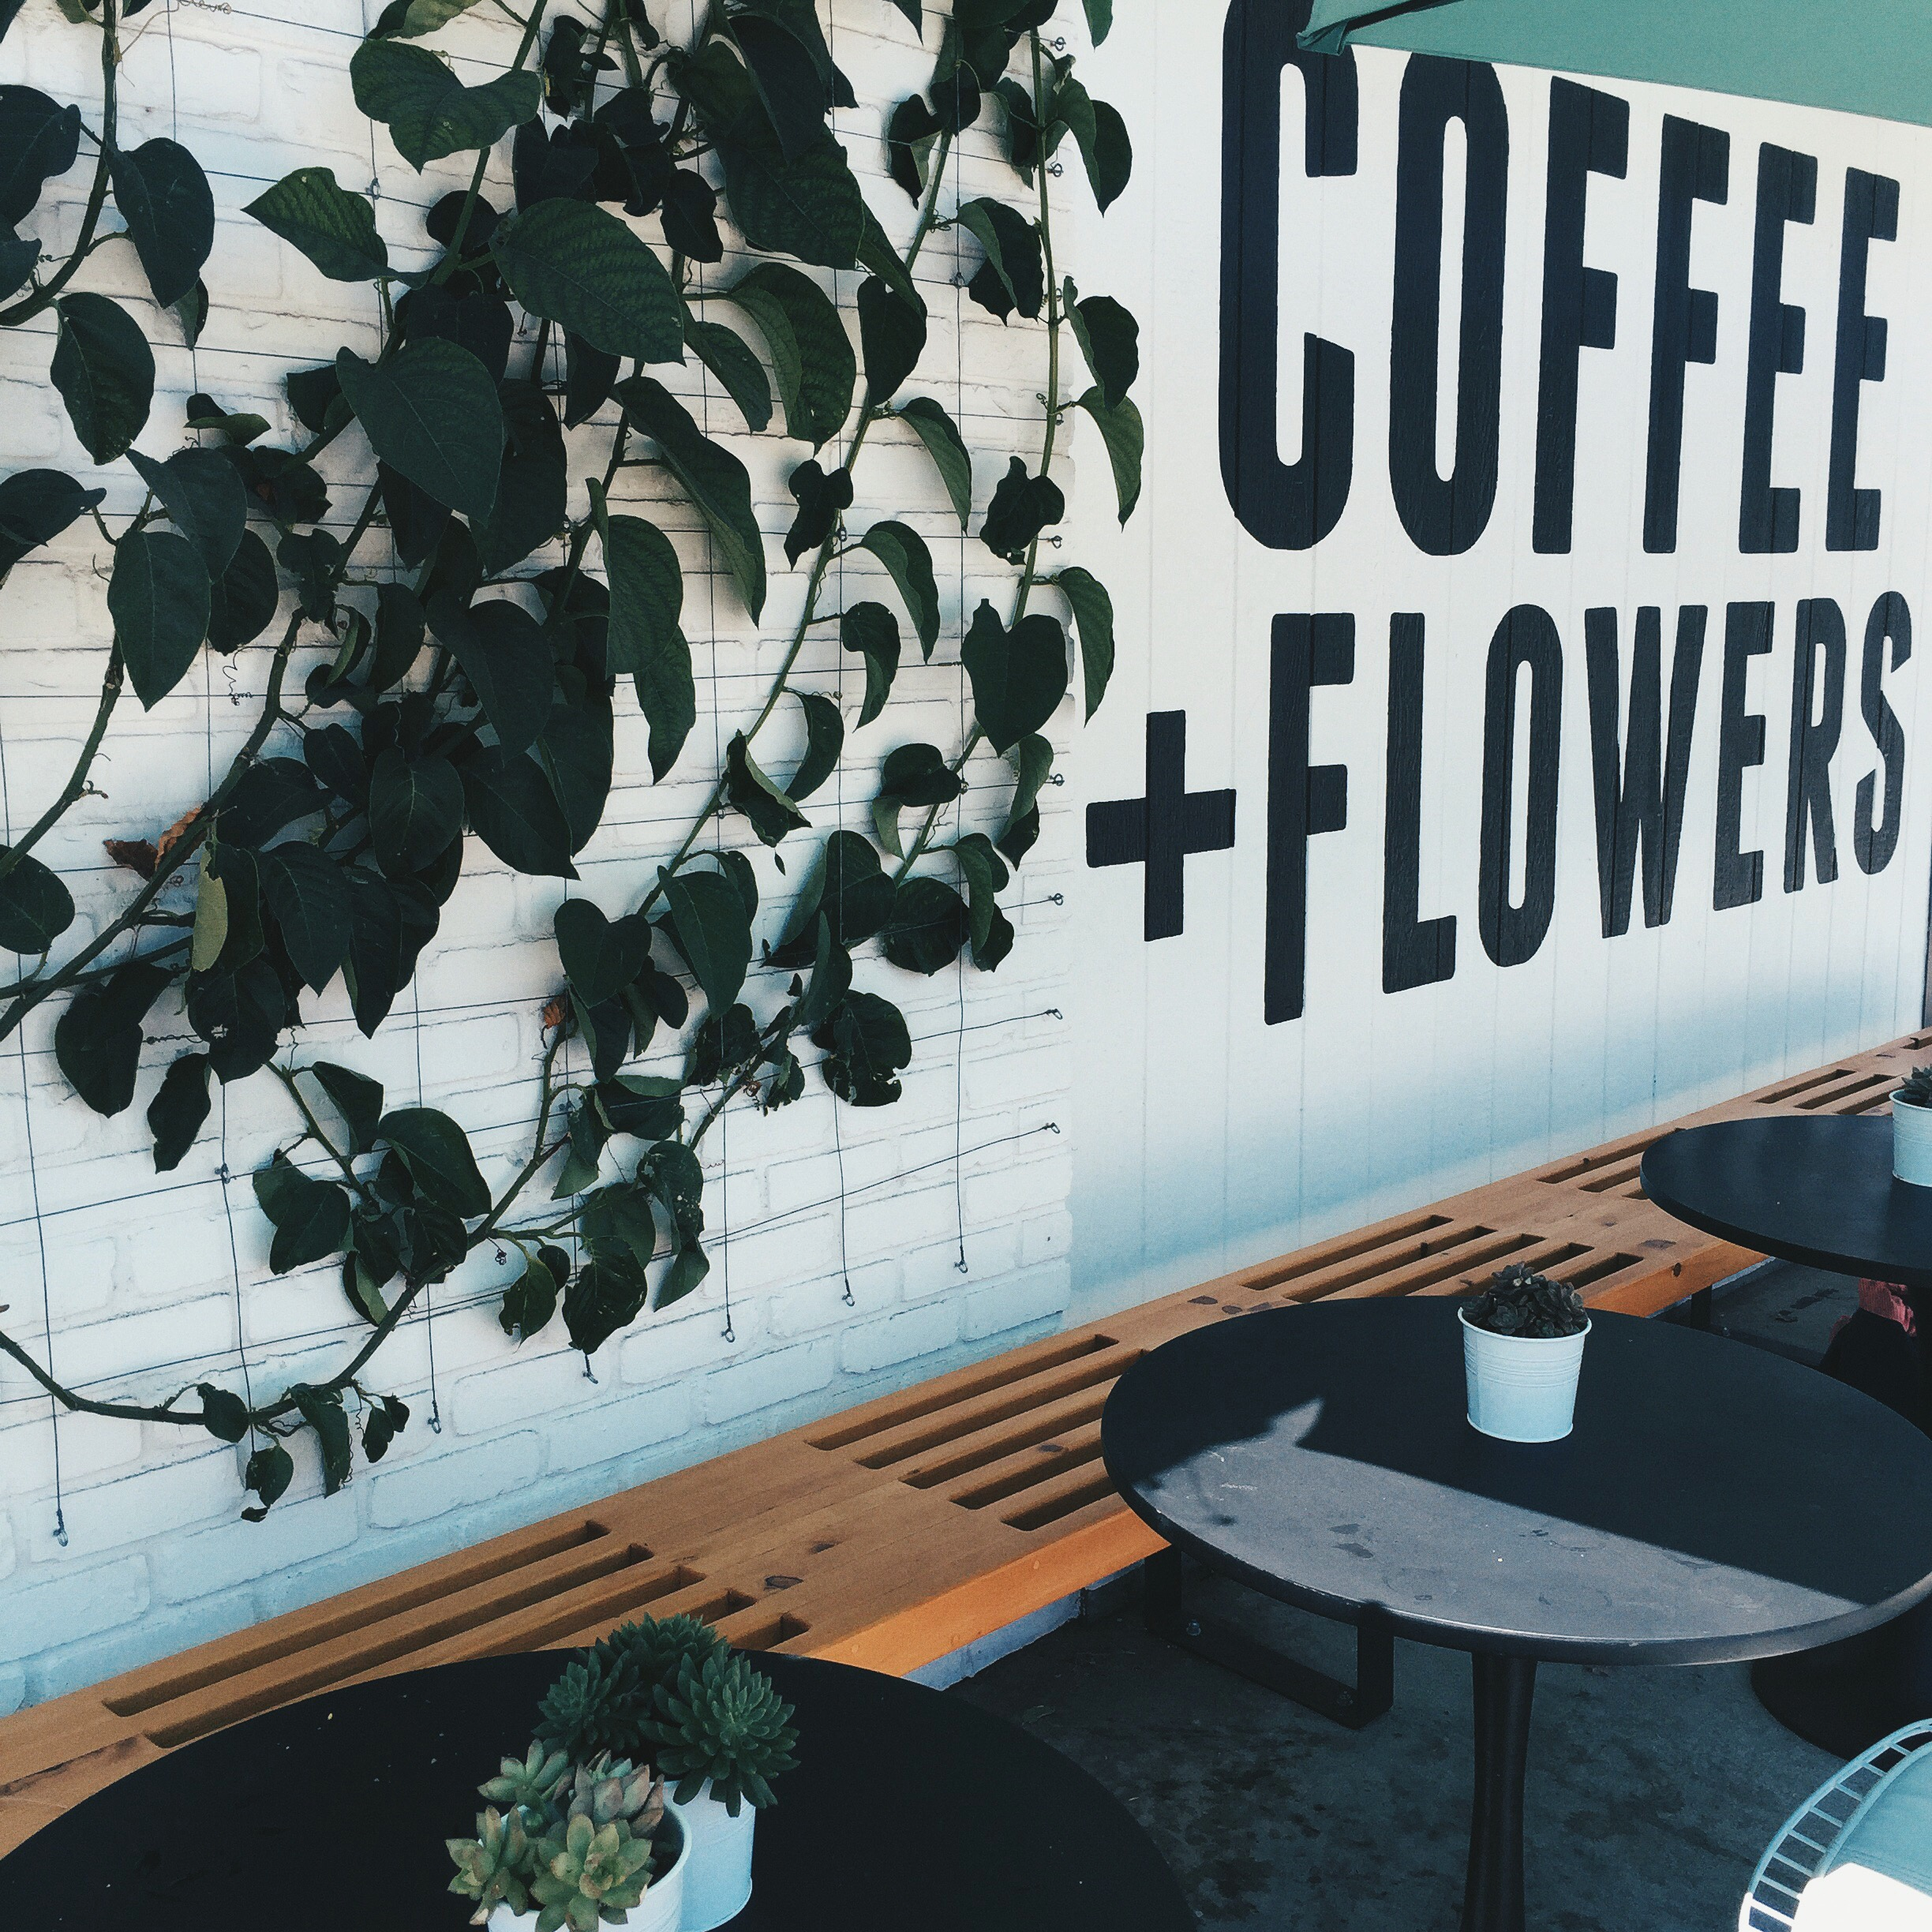 This cute place was called Coffee+Flowers. Two of my favorite things in one place! They had florists working side by side with baristas. What a dream! I tried the avocado toast and their iced Americano. Delicious. The shop was also connected to a nursery on the other side, and I was very tempted to take some succulent friends home.